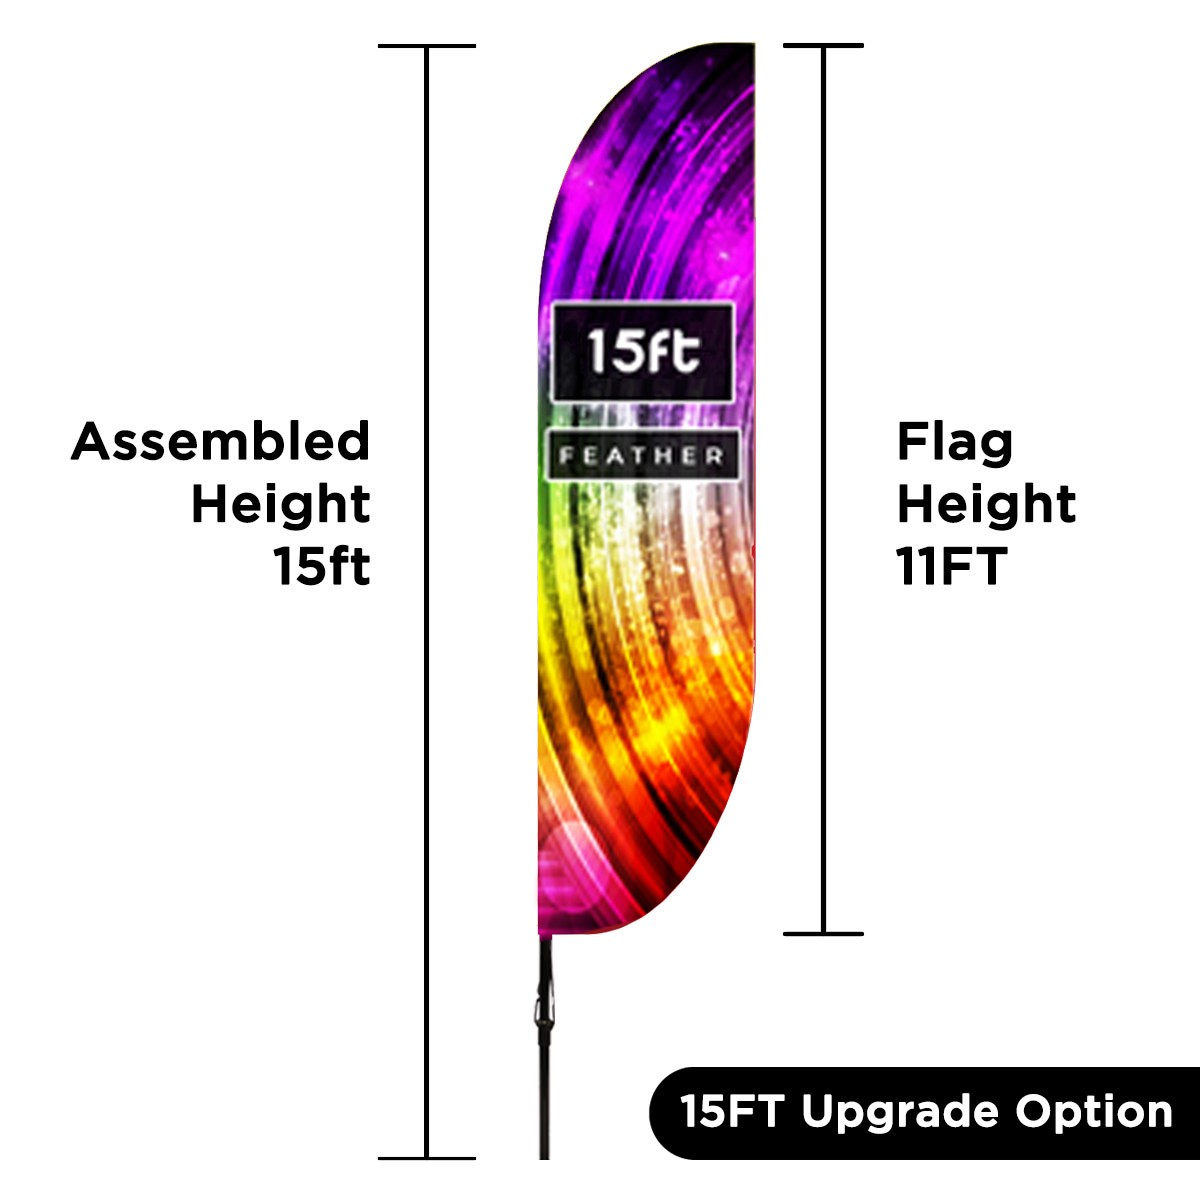 15ft Upgrade Option